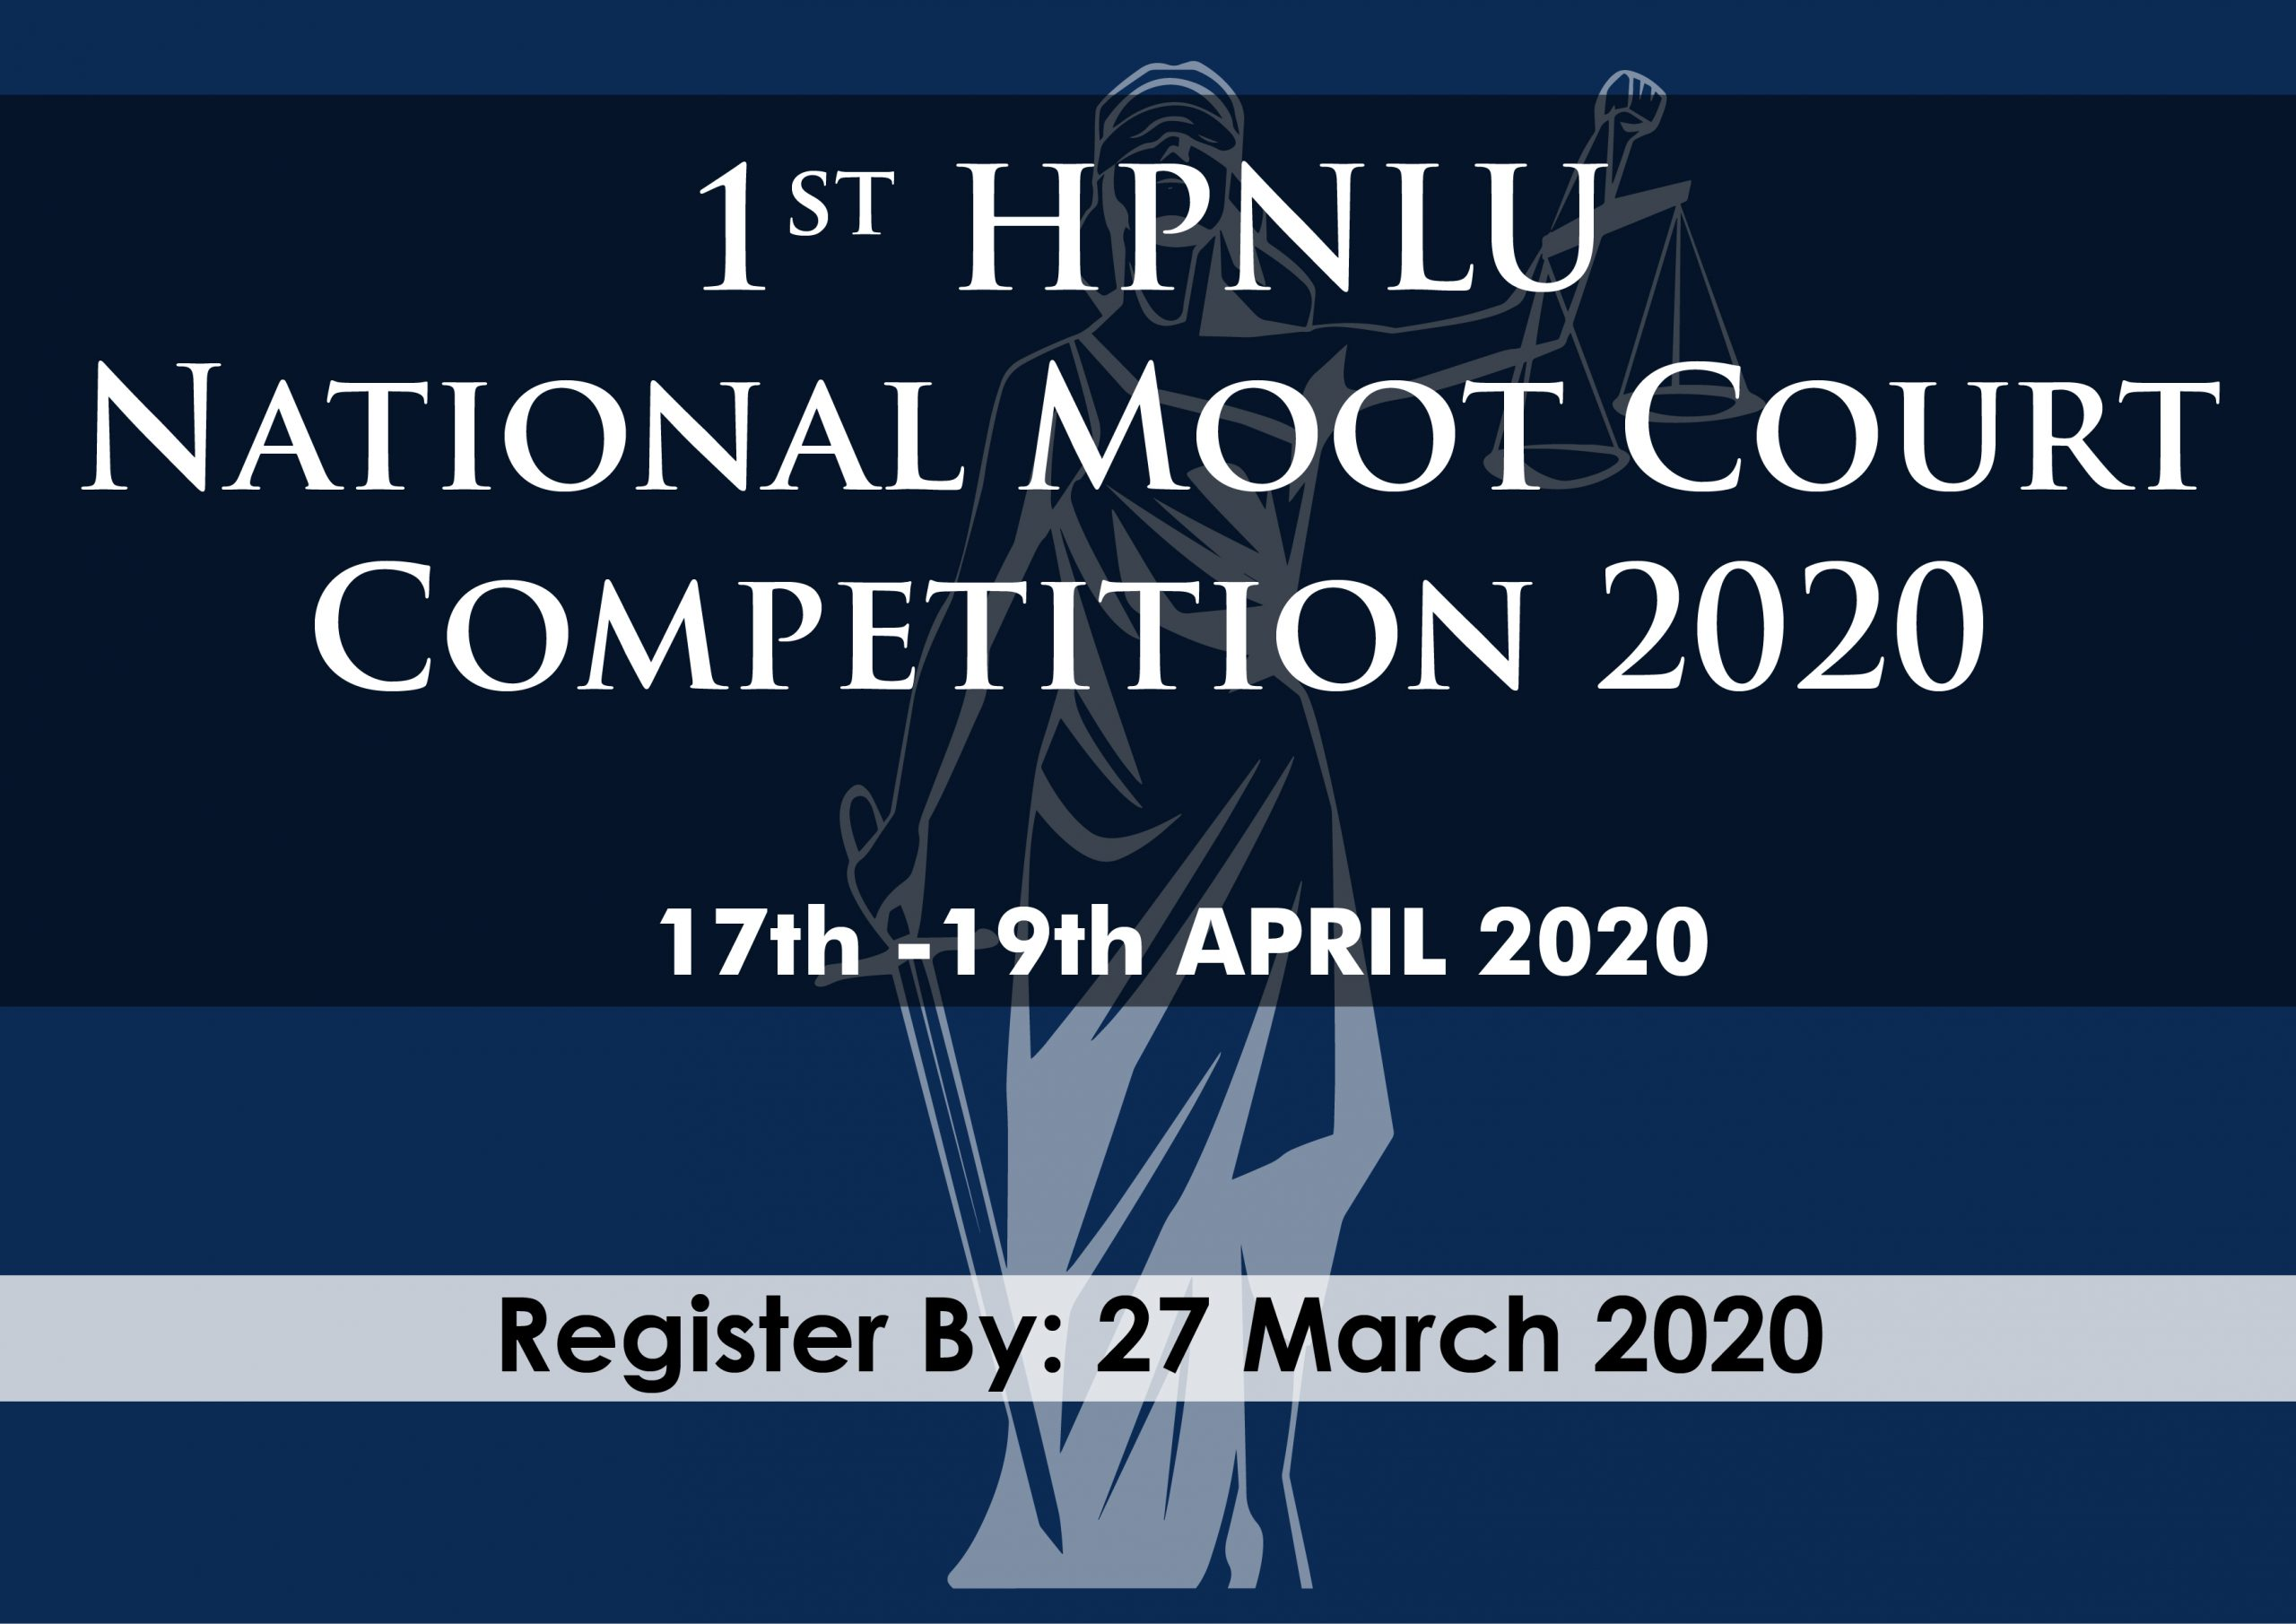 1st HPNLU National Moot Court Competition 2020